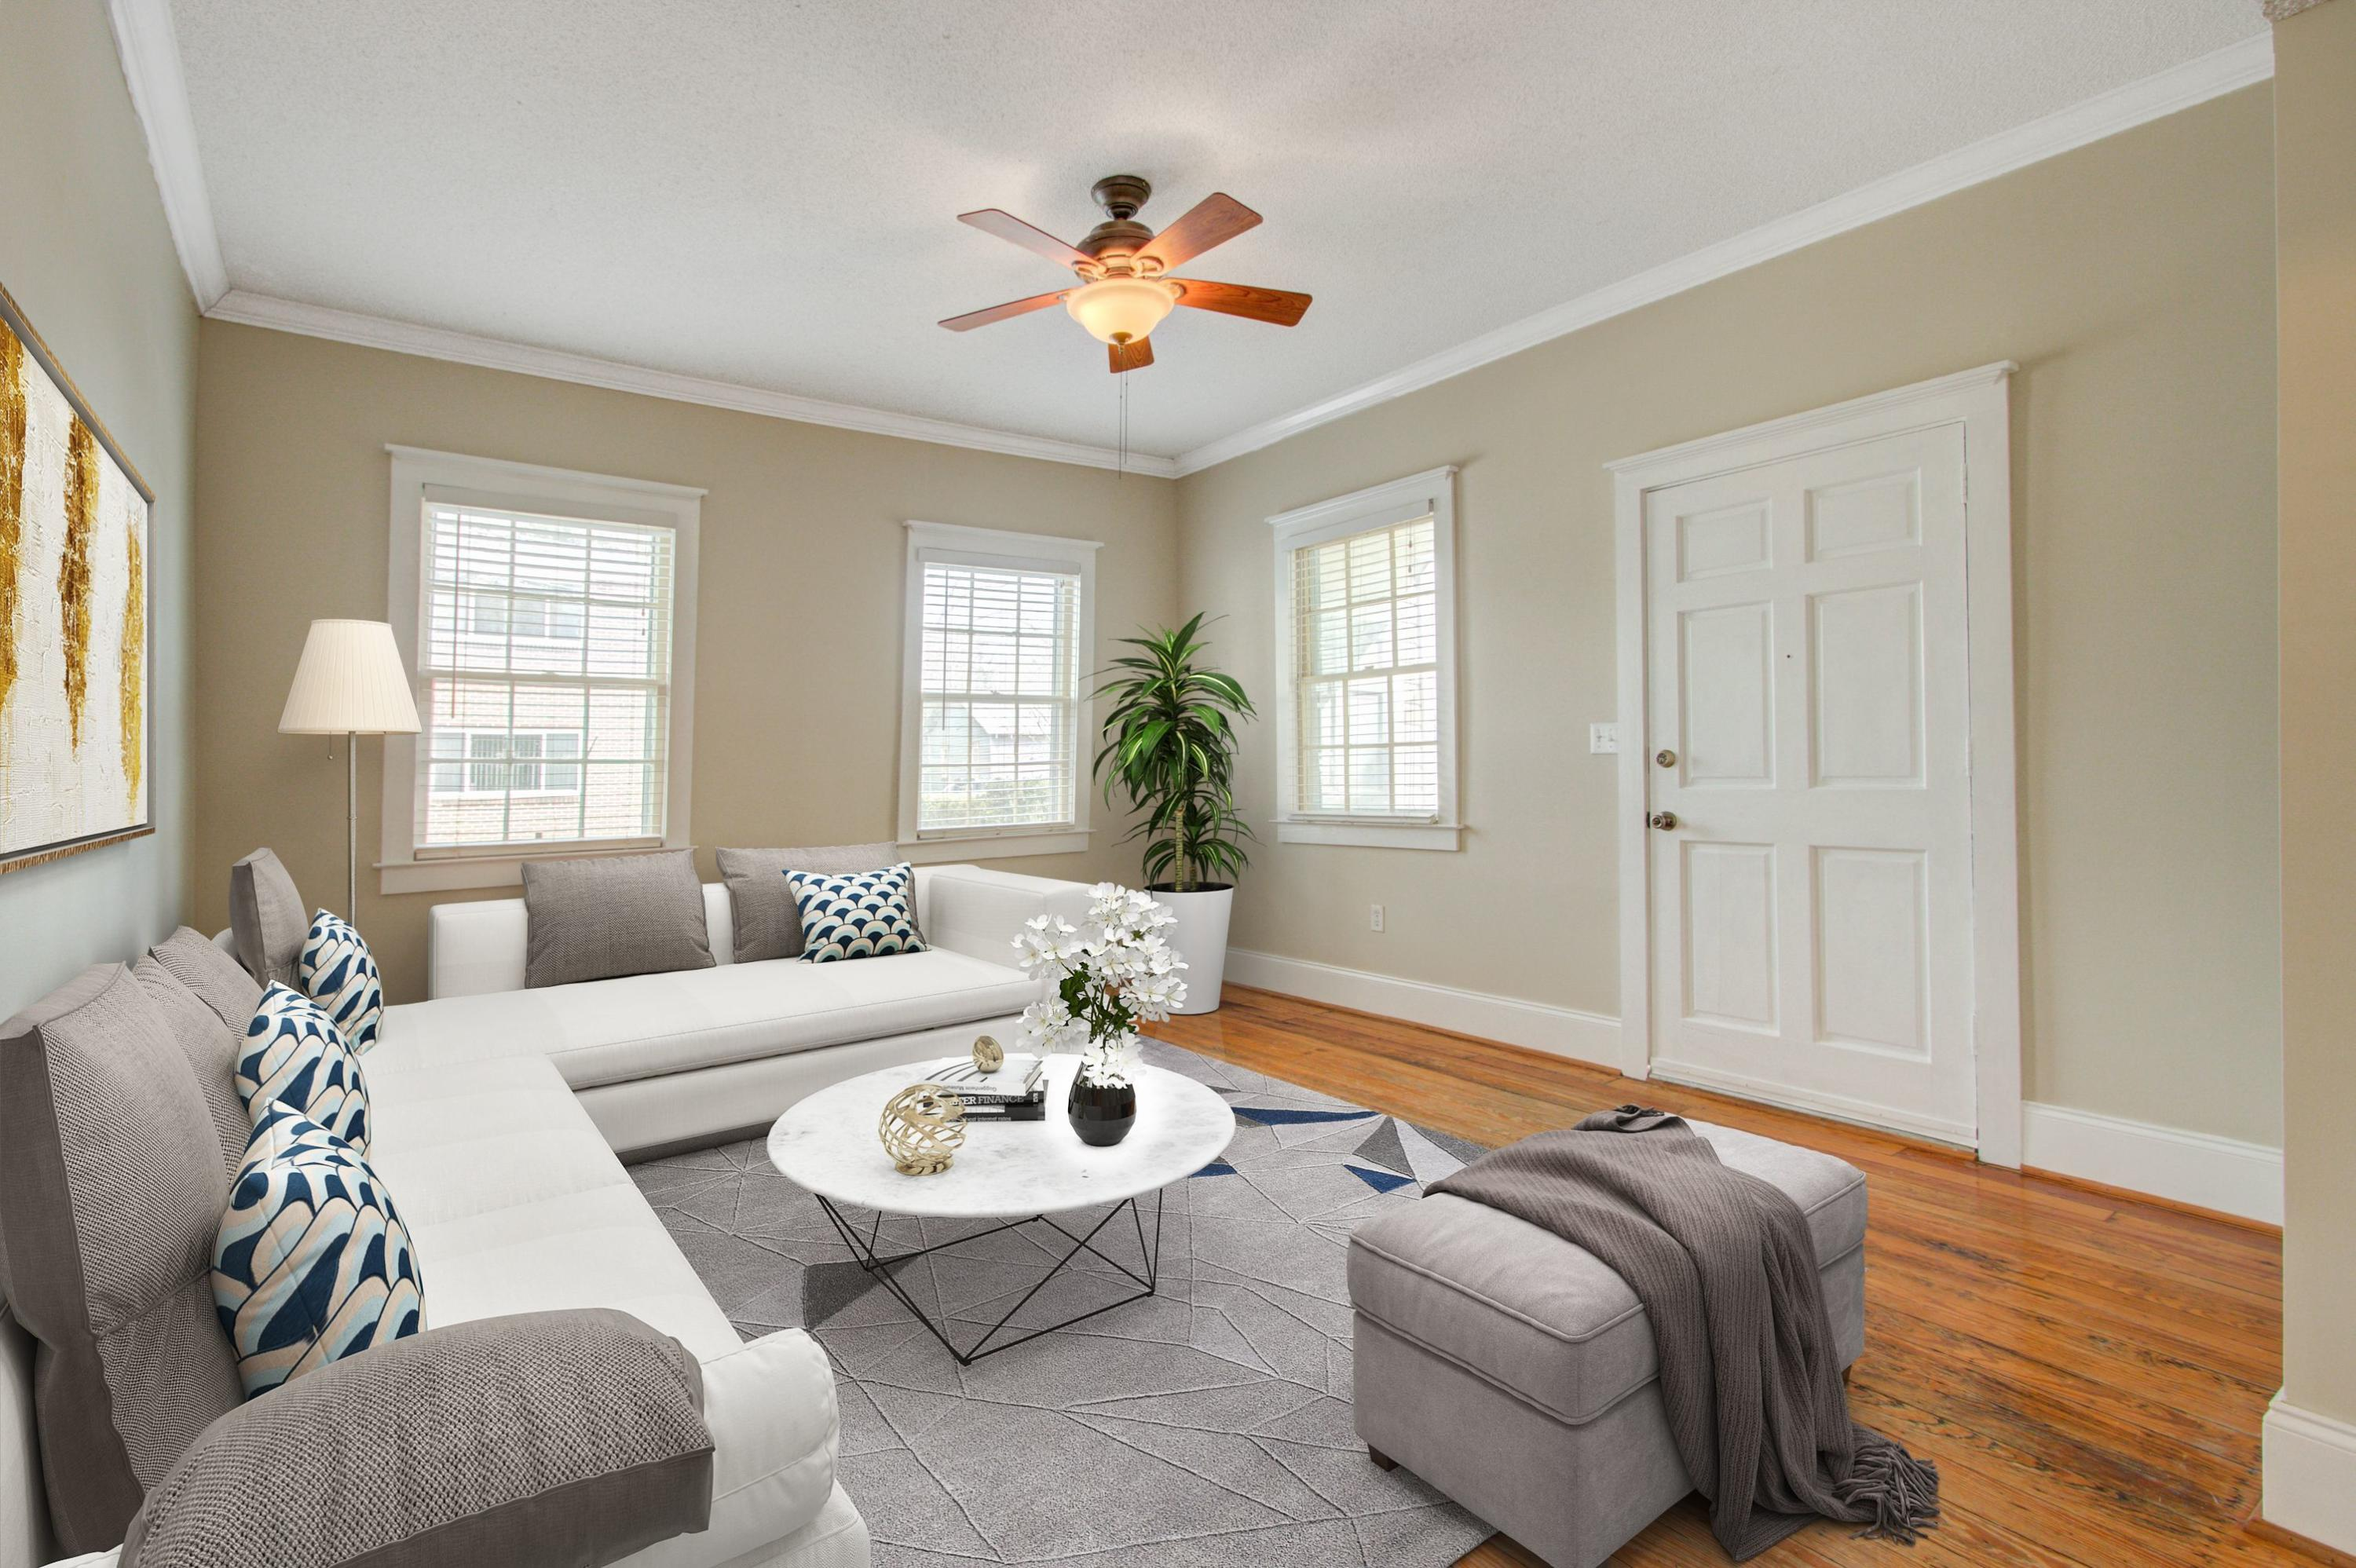 Elliotborough Condos For Sale - 3 Kracke, Charleston, SC - 9